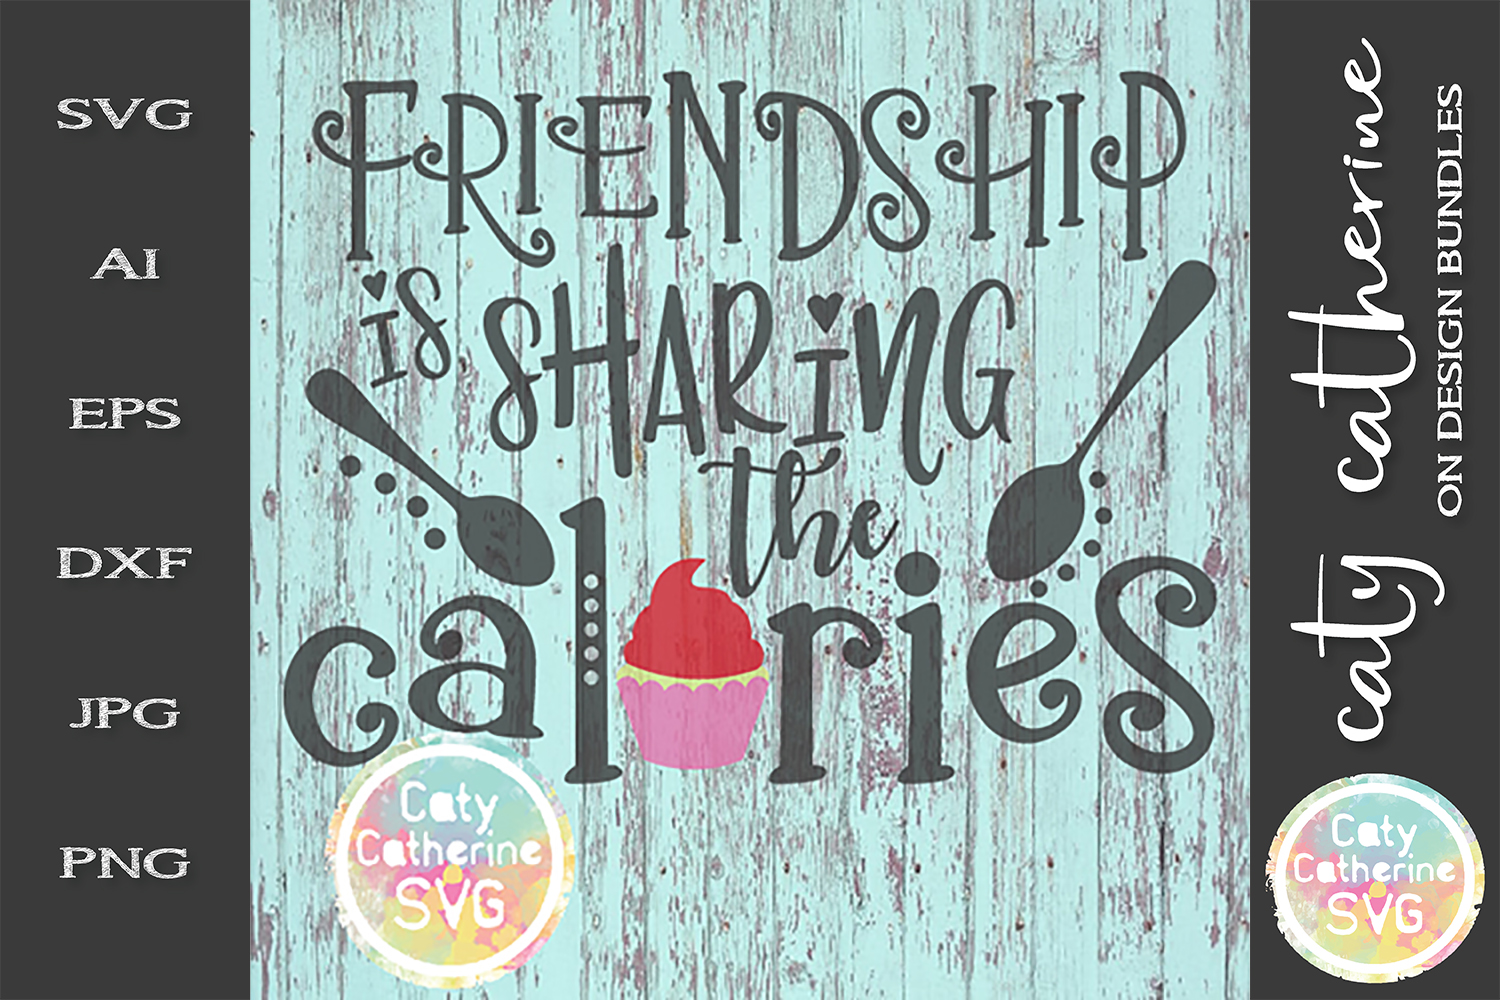 Friendship Is Sharing The Calories Funny Sign SVG Cut File example image 1